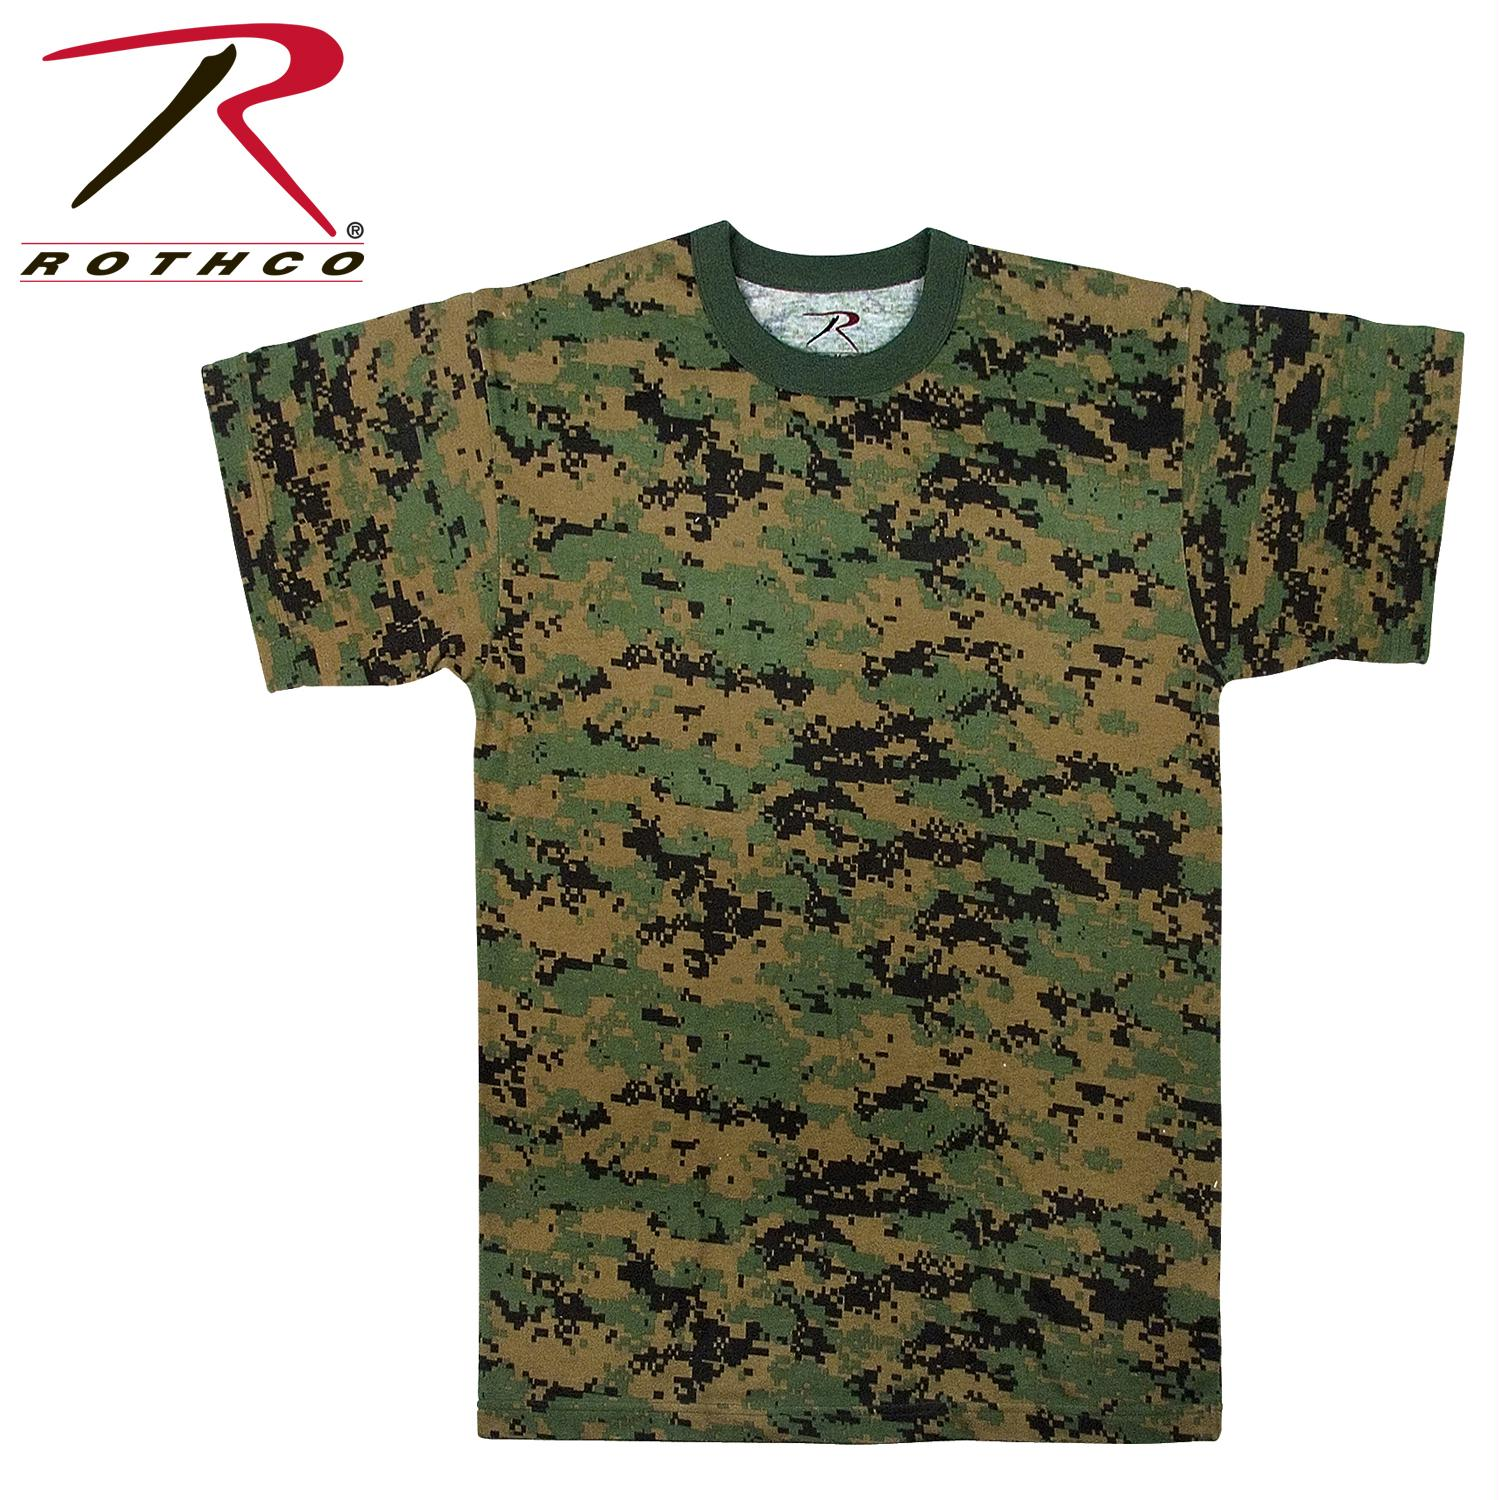 Rothco Digital Camo T-Shirt - Woodland Digital Camo / M